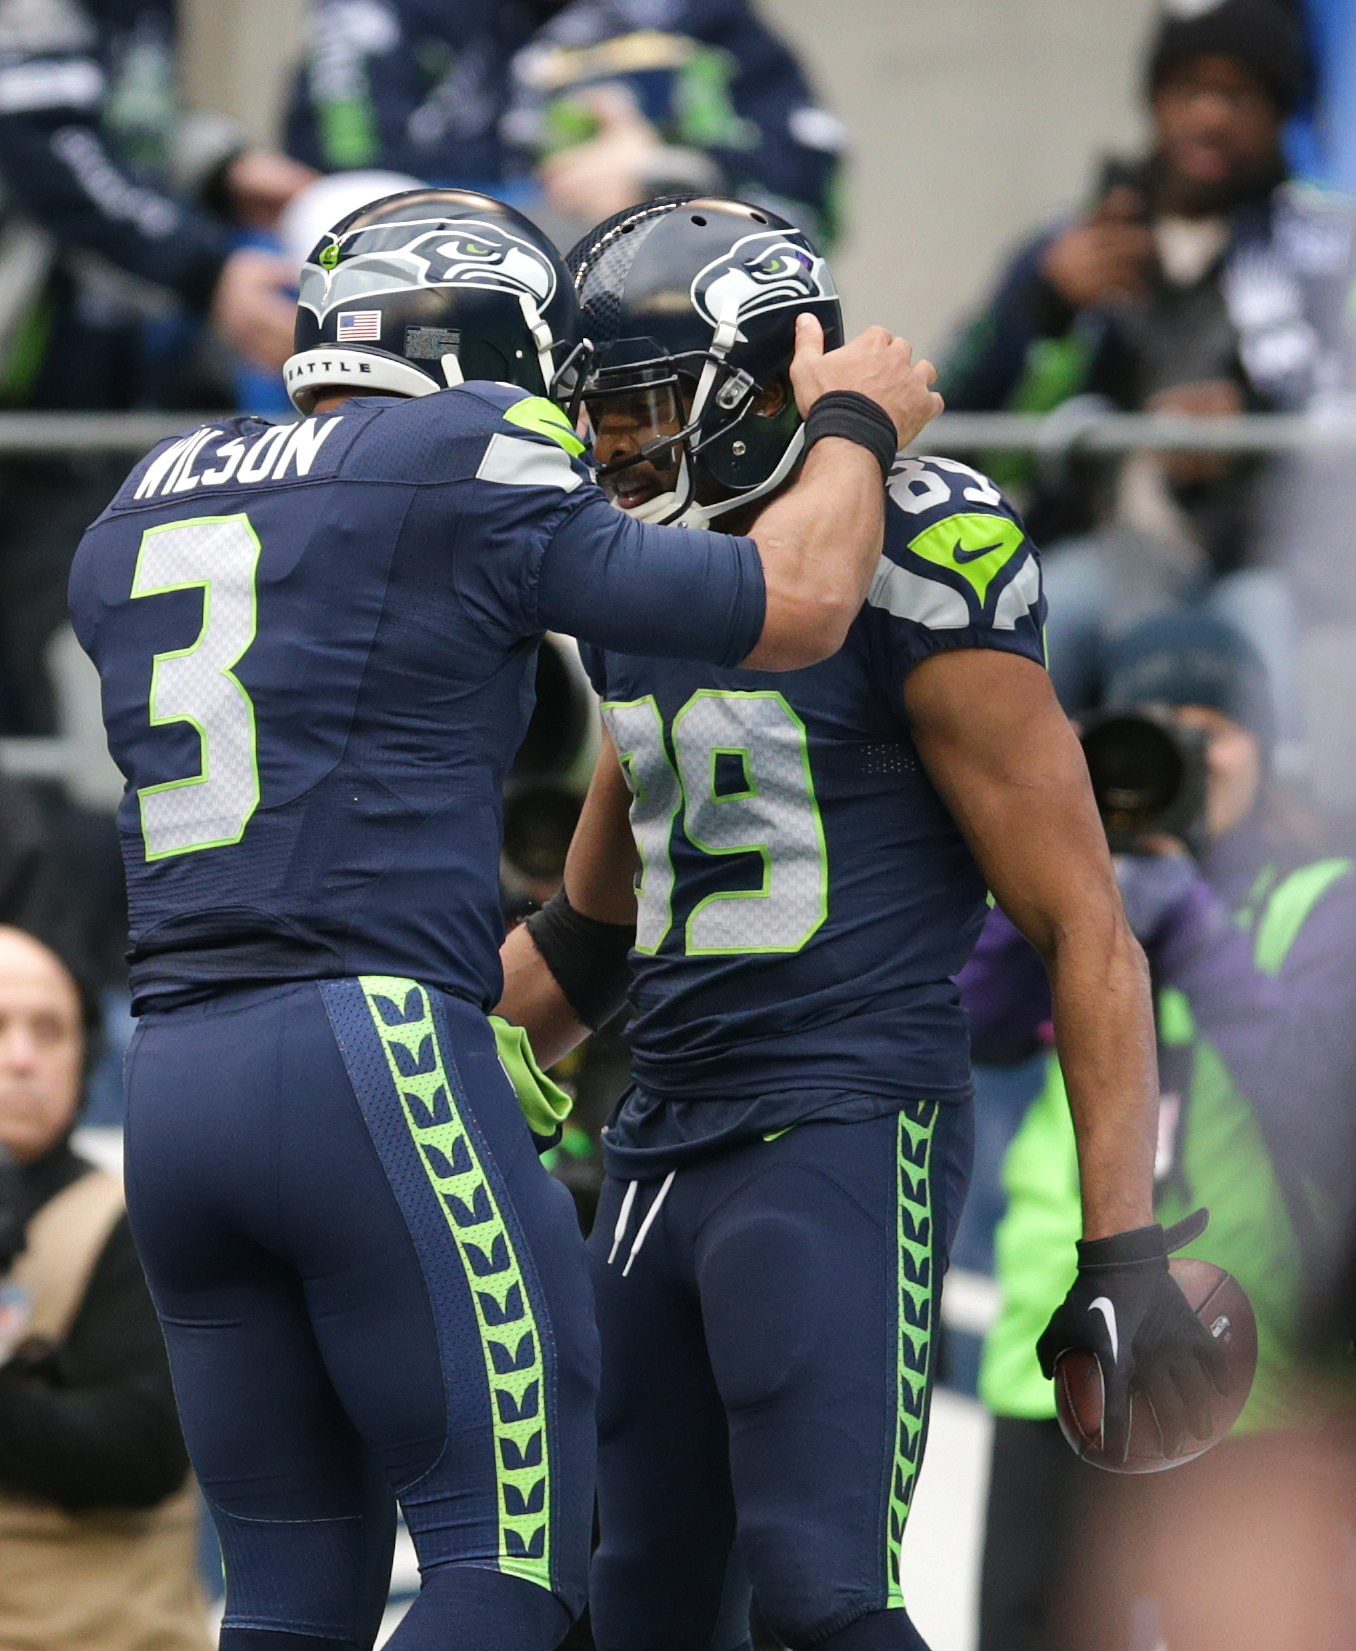 Seattle Seahawks quarterback Russell Wilson (3) congratulates Doug Baldwin after Wilson's touchdown pass to Baldwin against the Cleveland Browns in the first half of an NFL football game, Sunday, Dec. 20, 2015, in Seattle. (AP Photo/Scott Eklund)